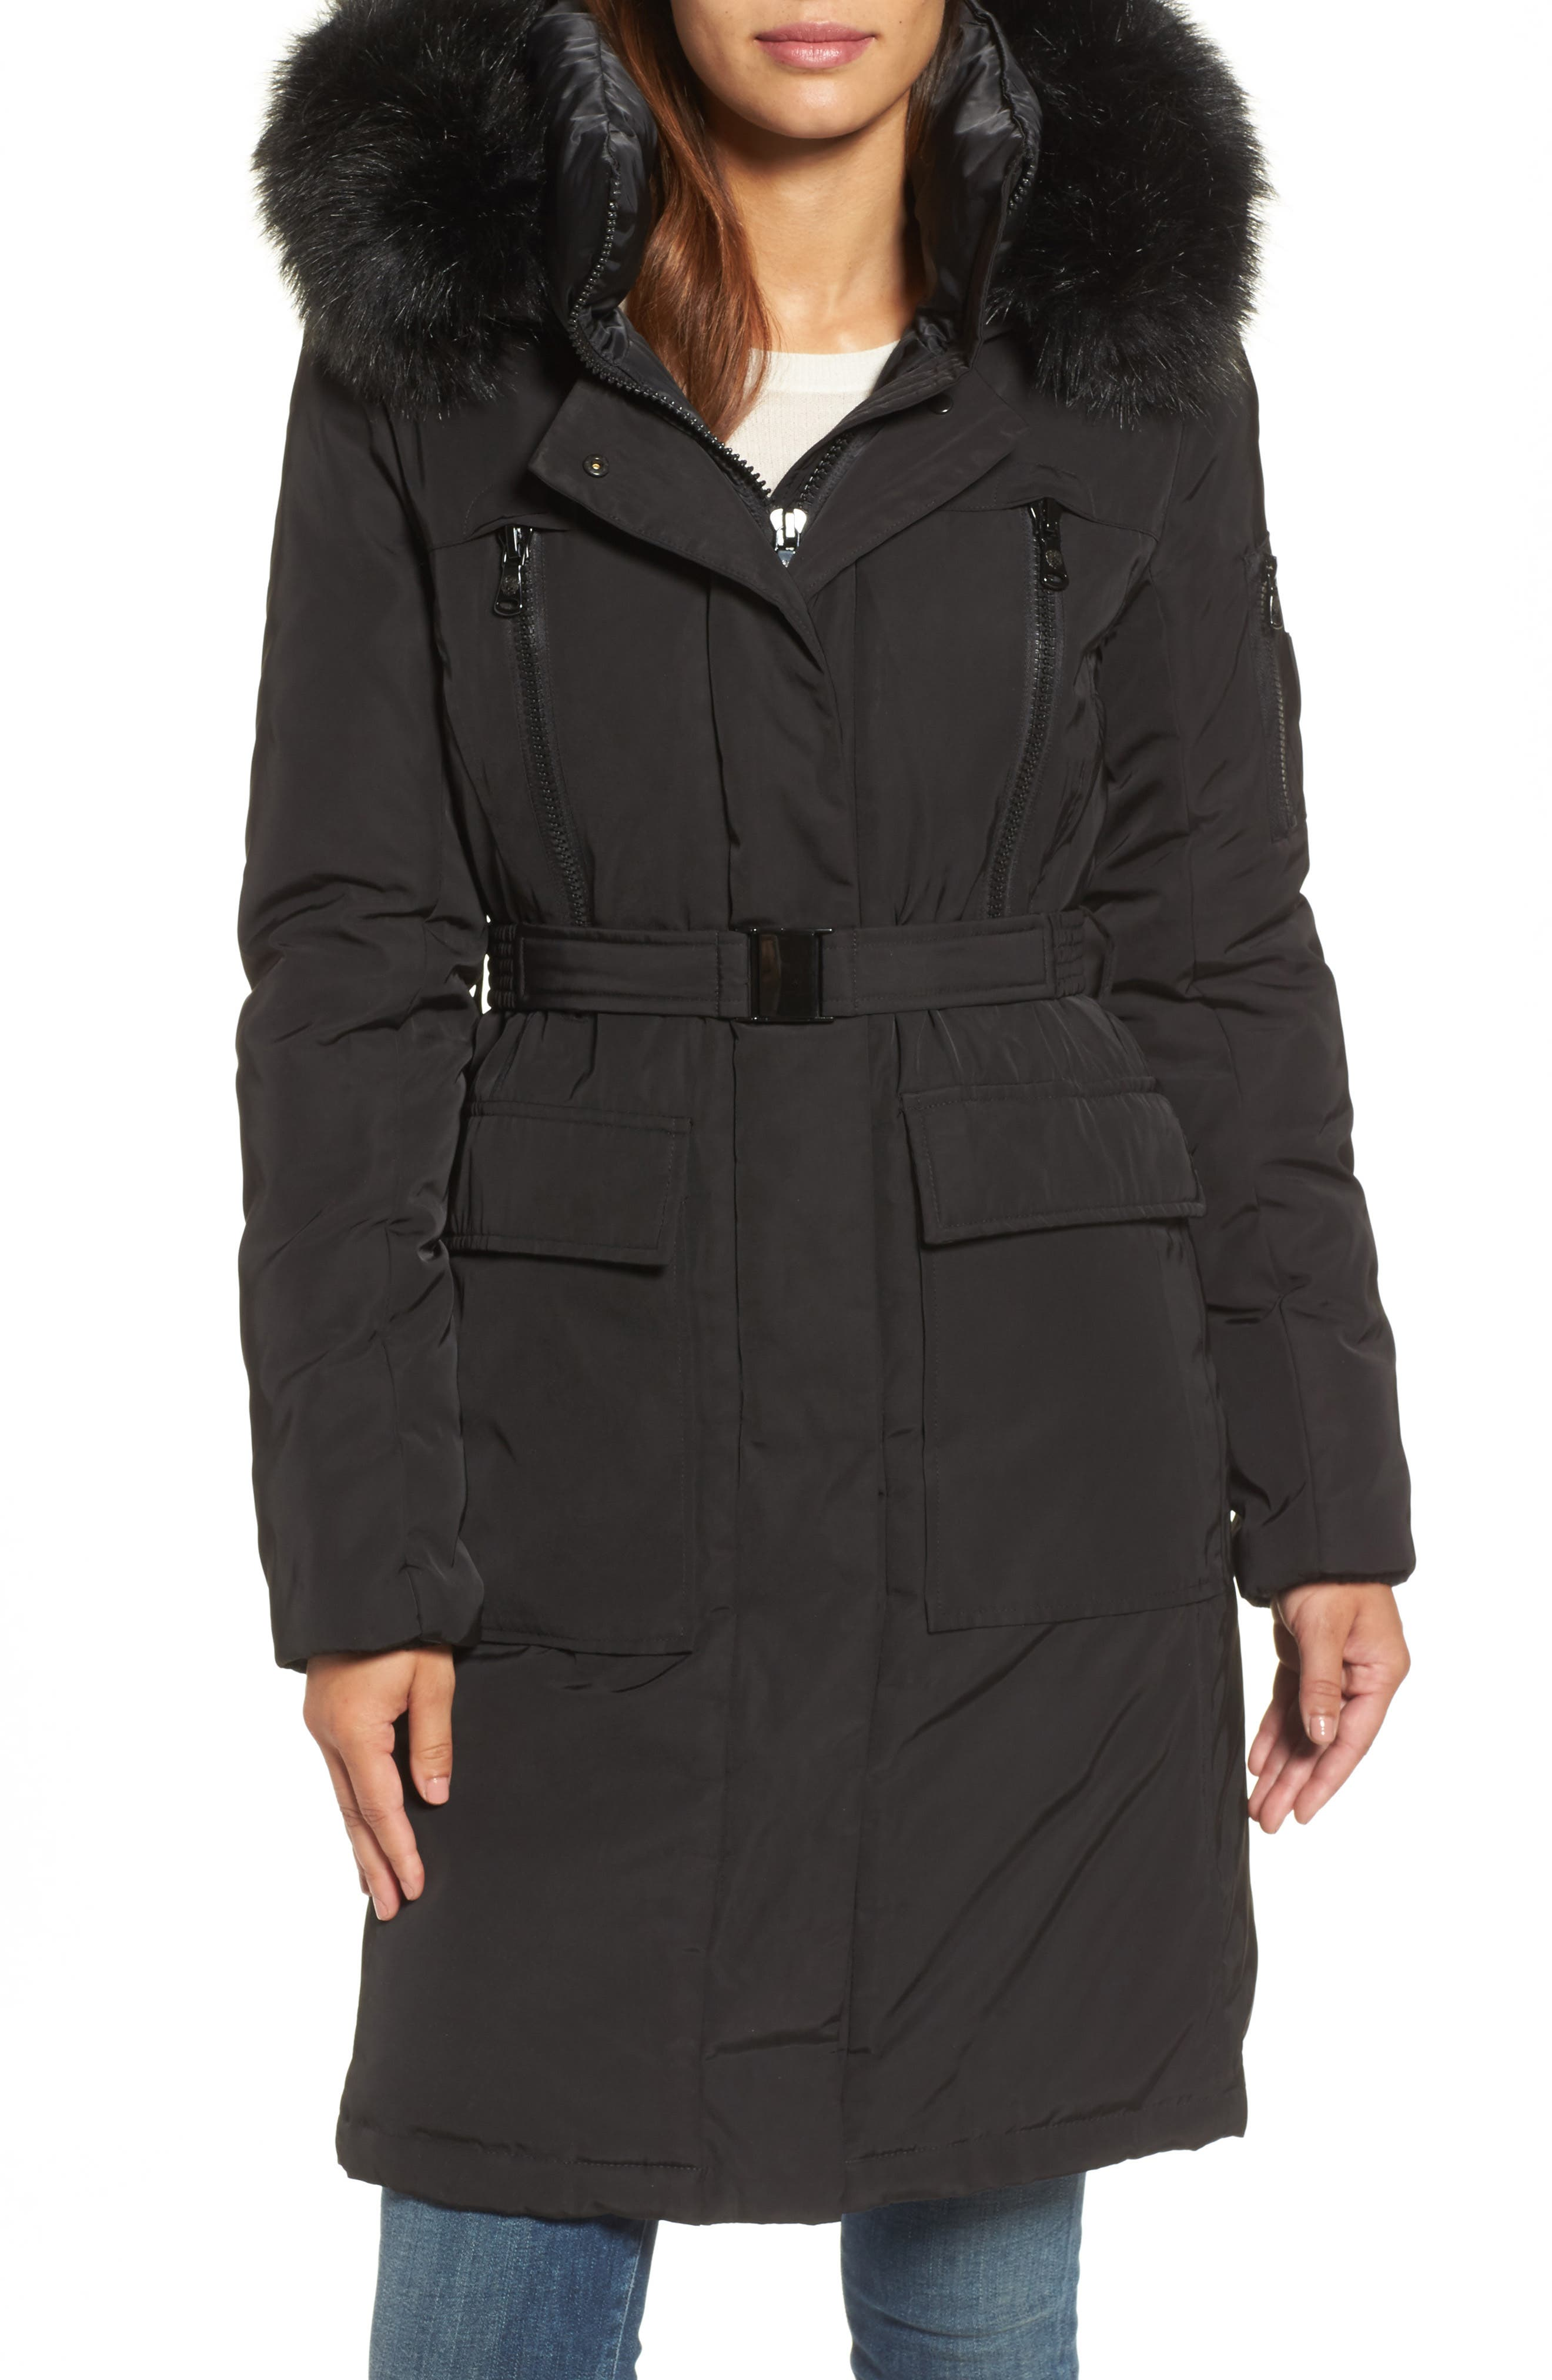 Insulated Puffer Jacket,                         Main,                         color, Black